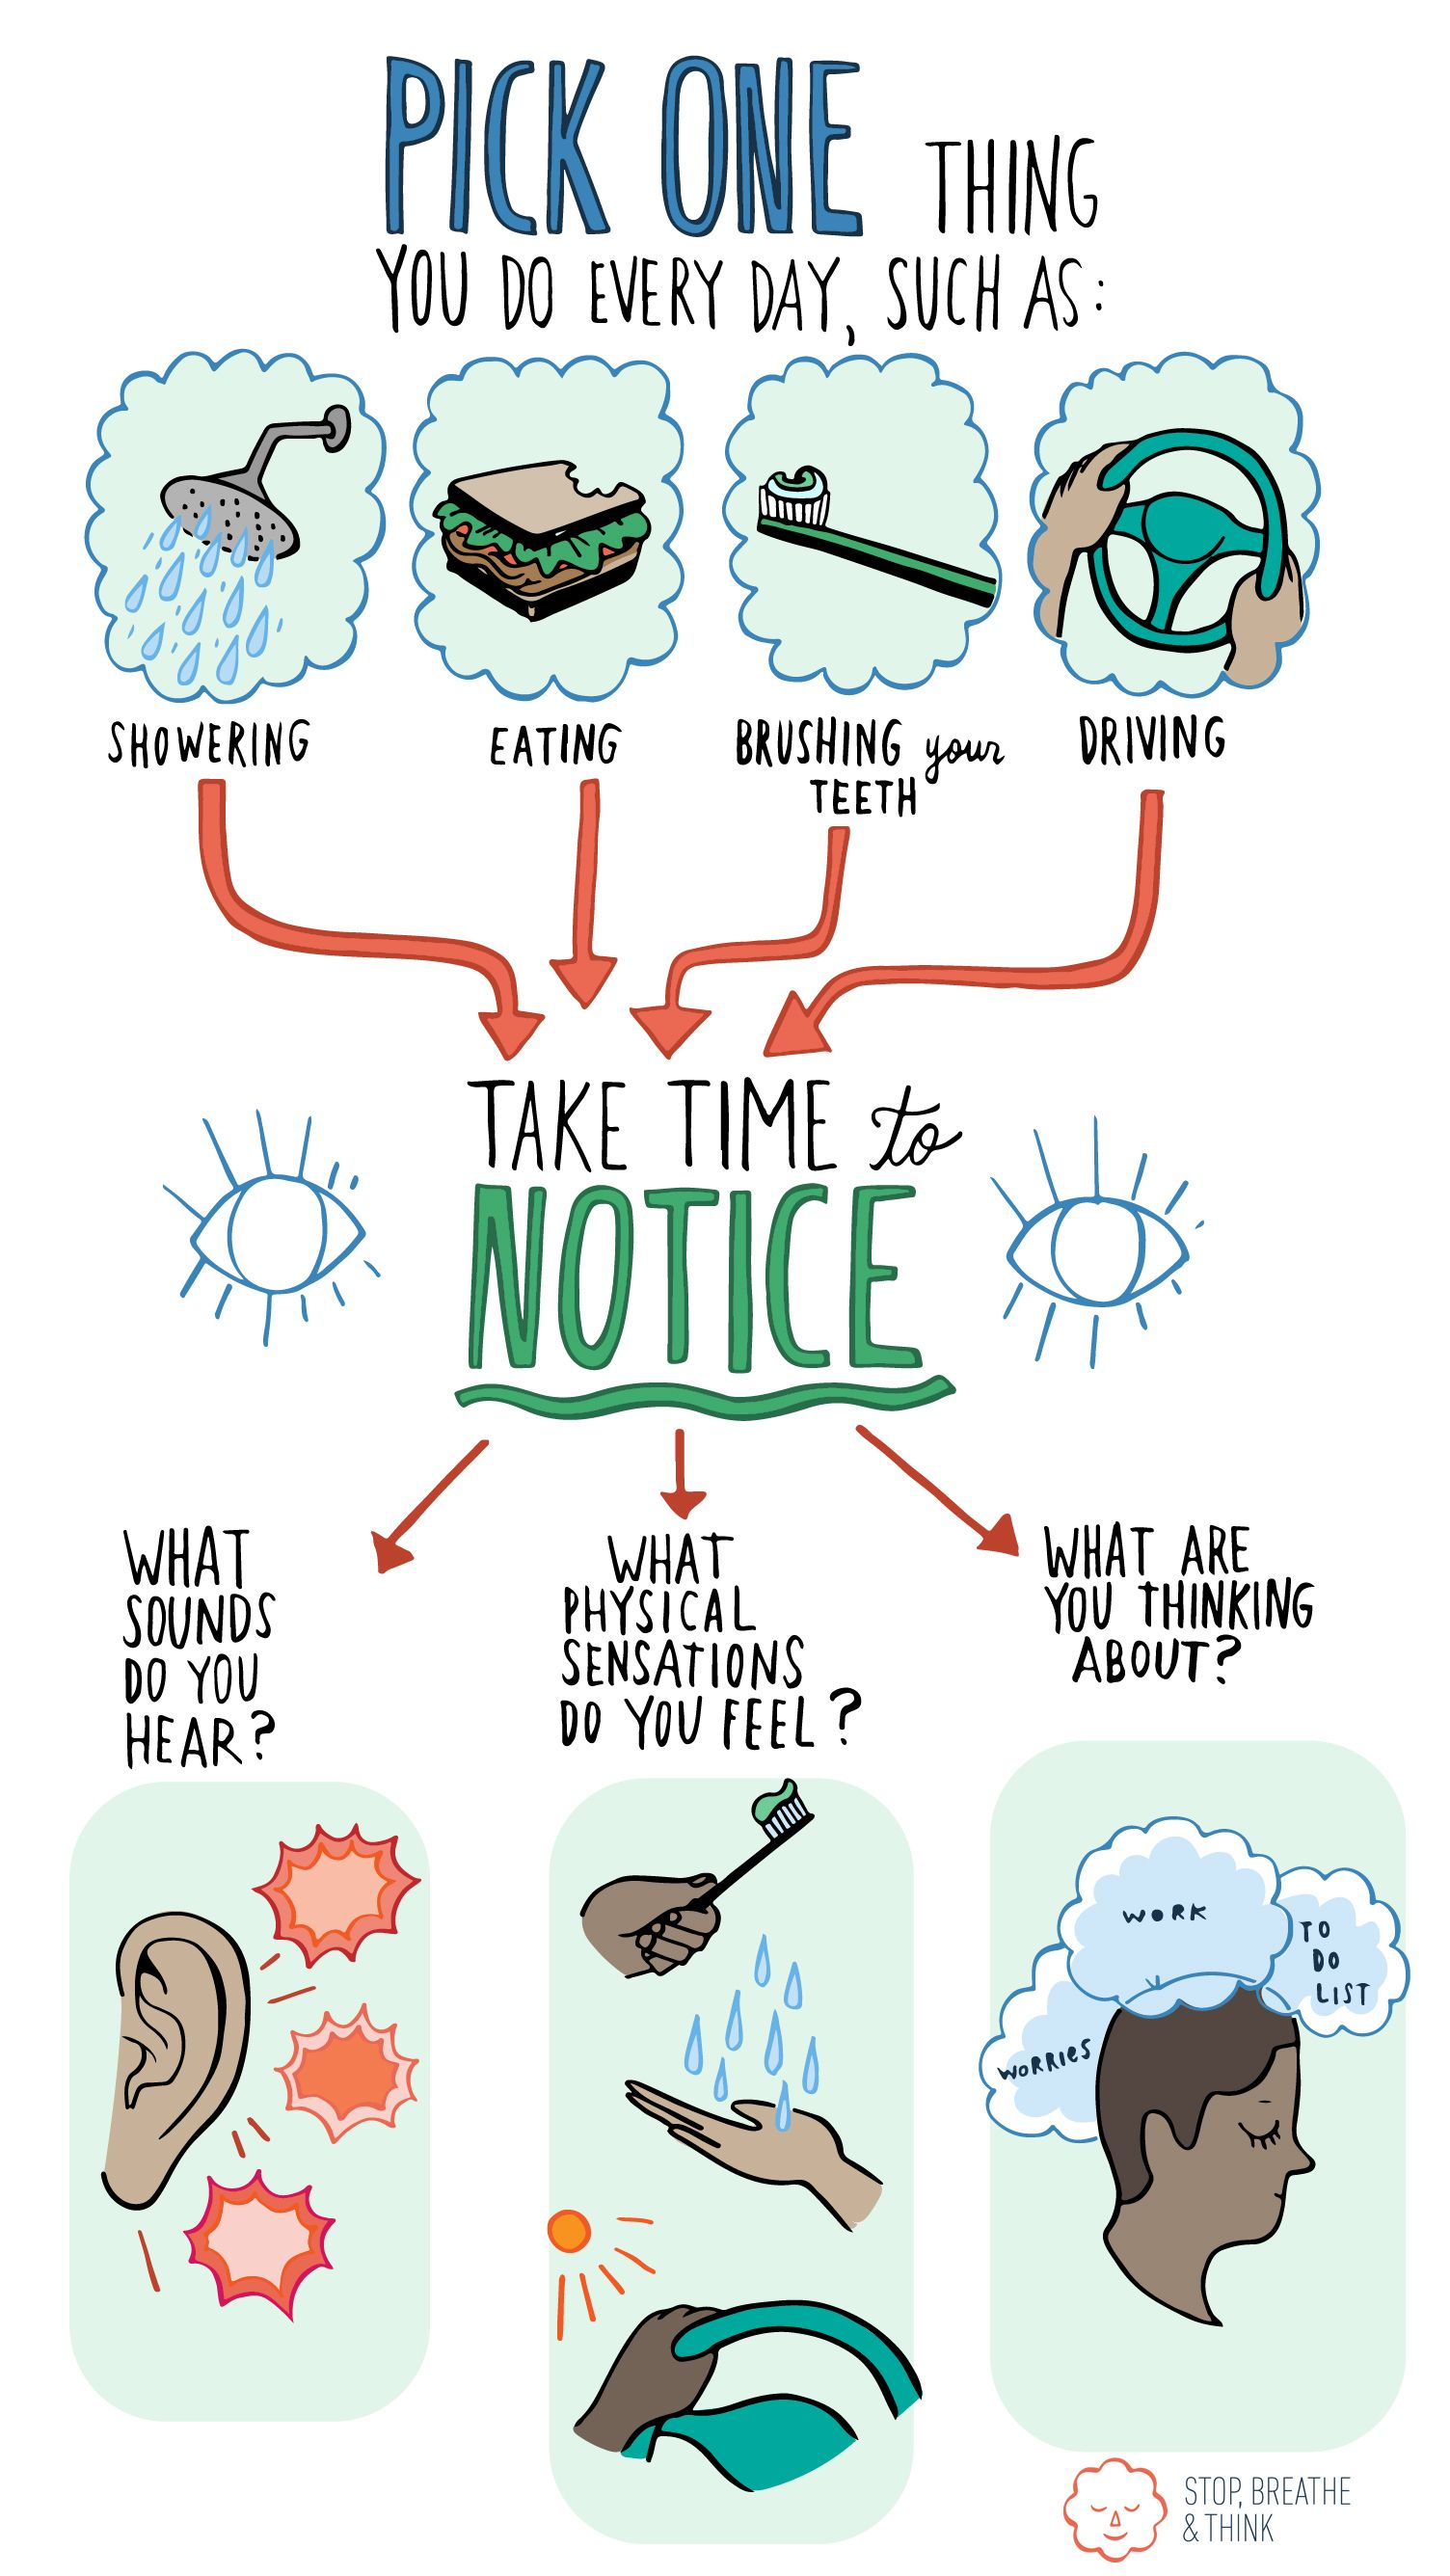 Pick One Thing And Take Time To Notice